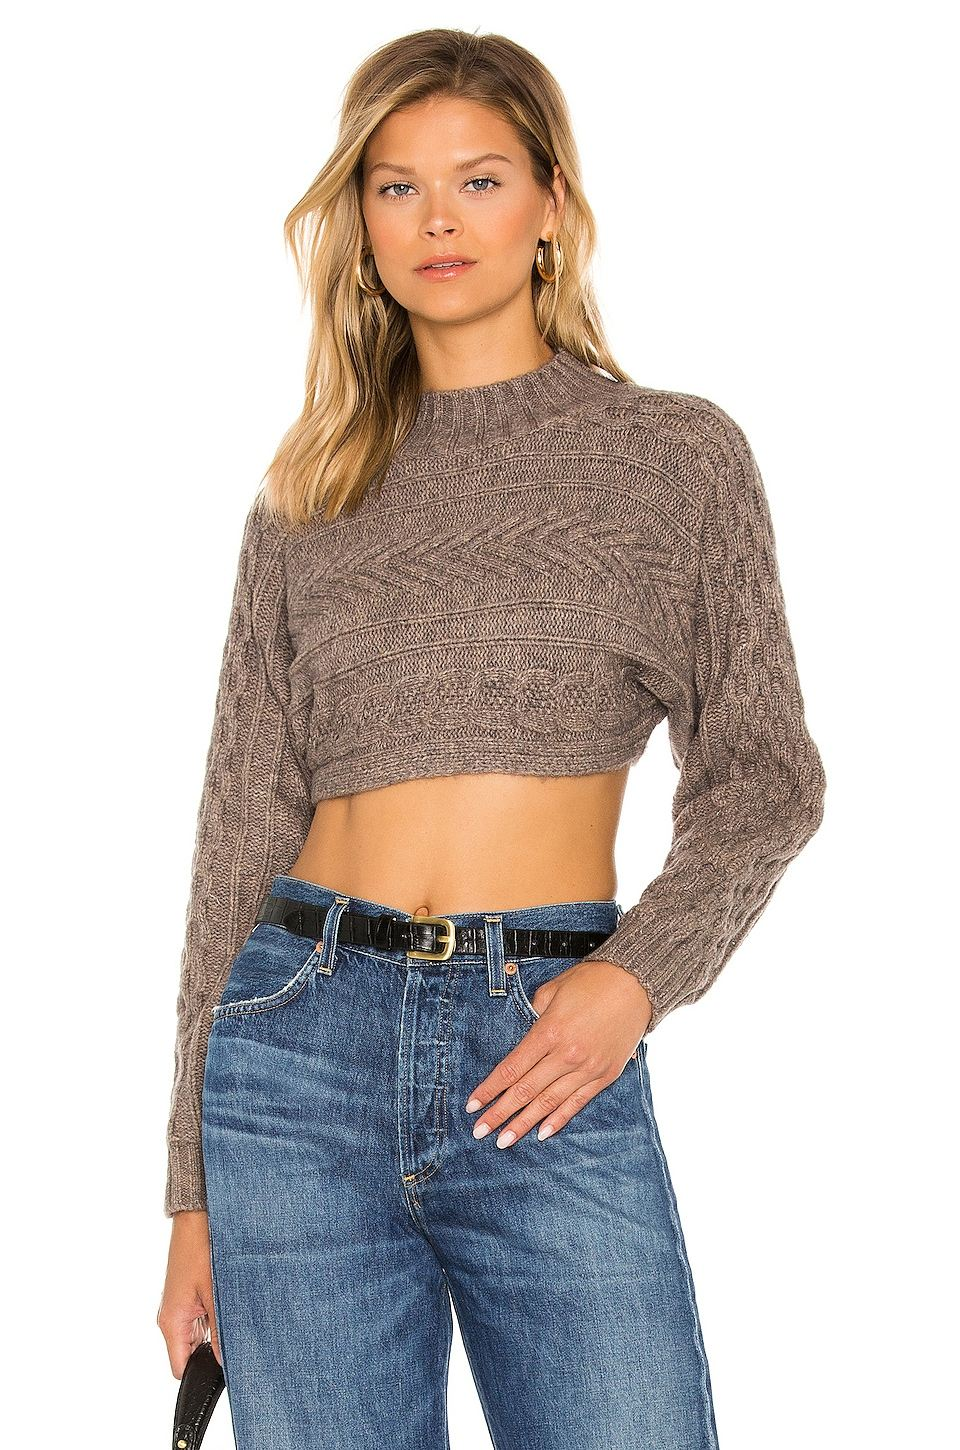 Mila Ultra Crop Sweater by Superdown, available on revolve.com for $78 Emily Ratajkowski Top Exact Product